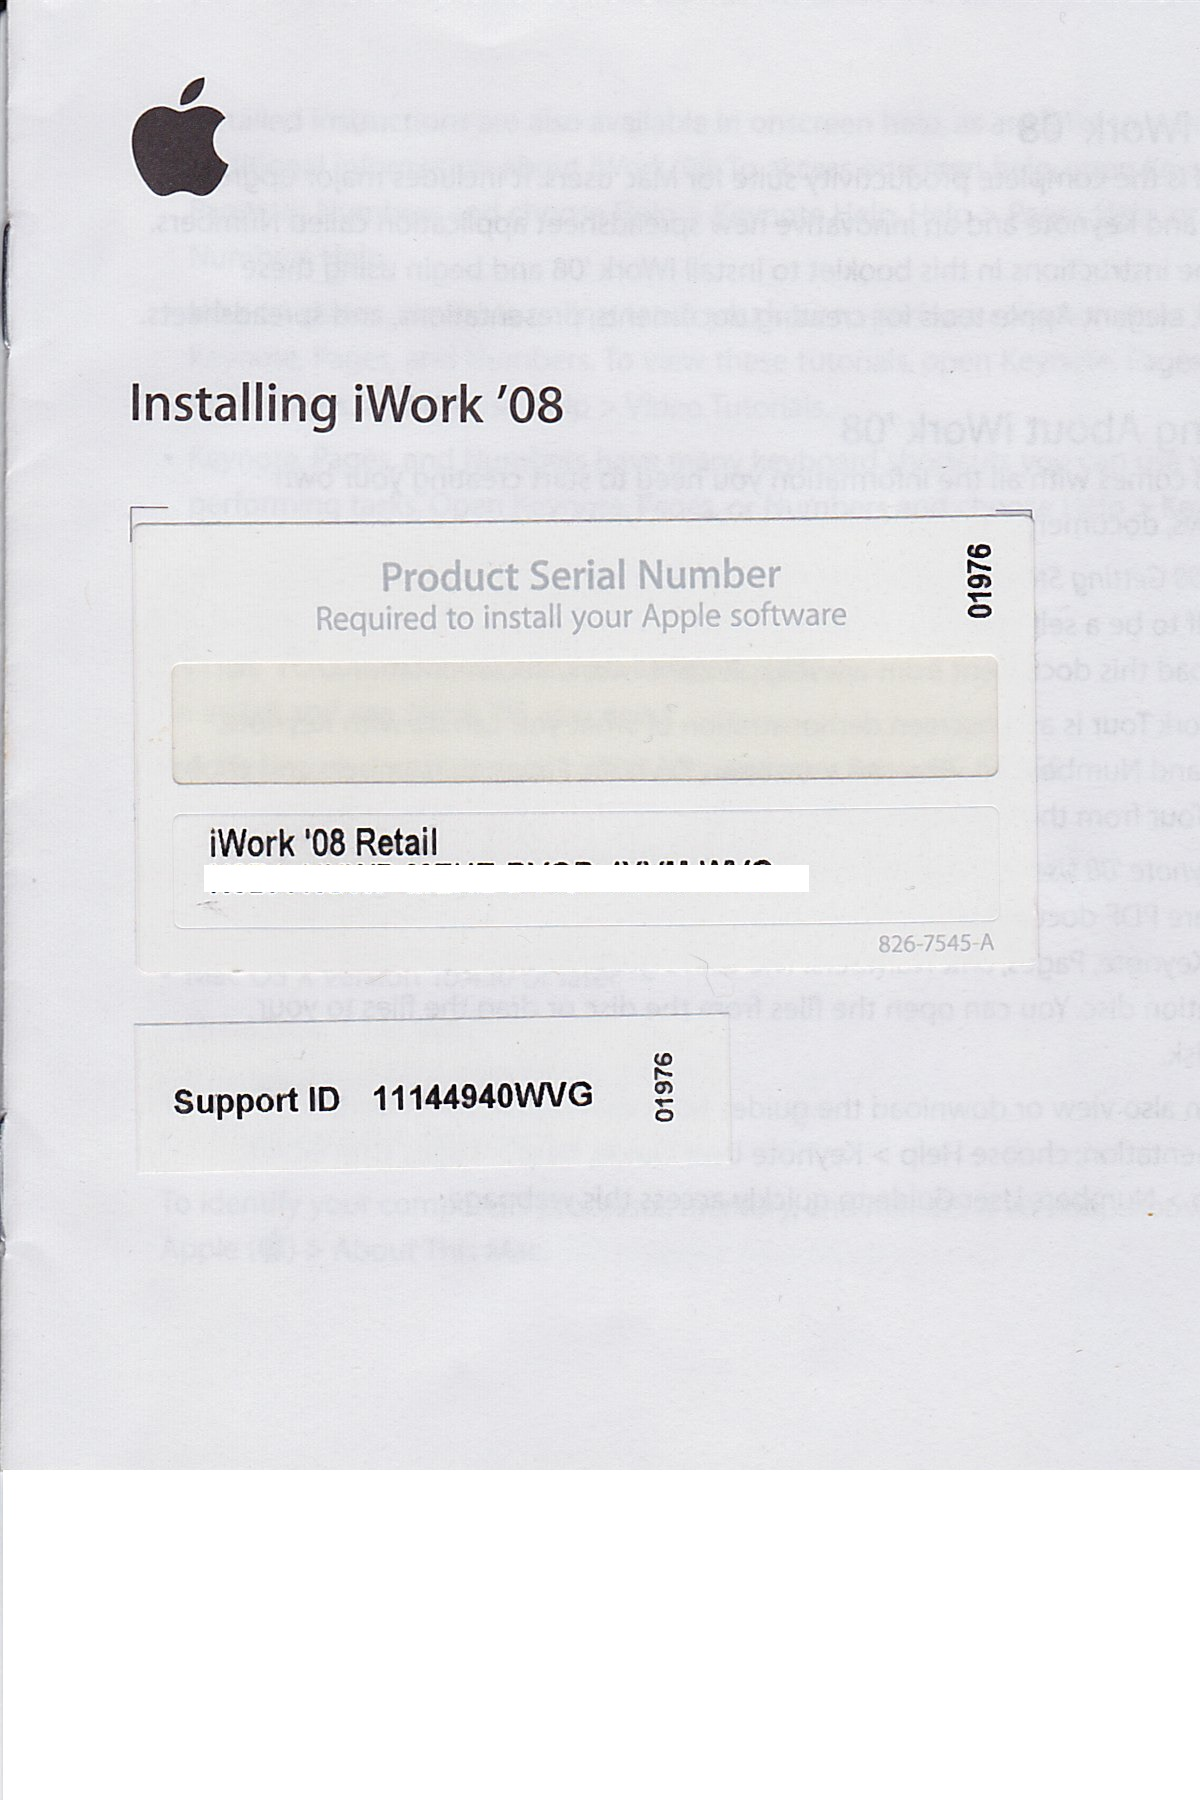 Files related to: iworks 09 serial. 16 Sep 2014 Download: Iworks 09 Full V